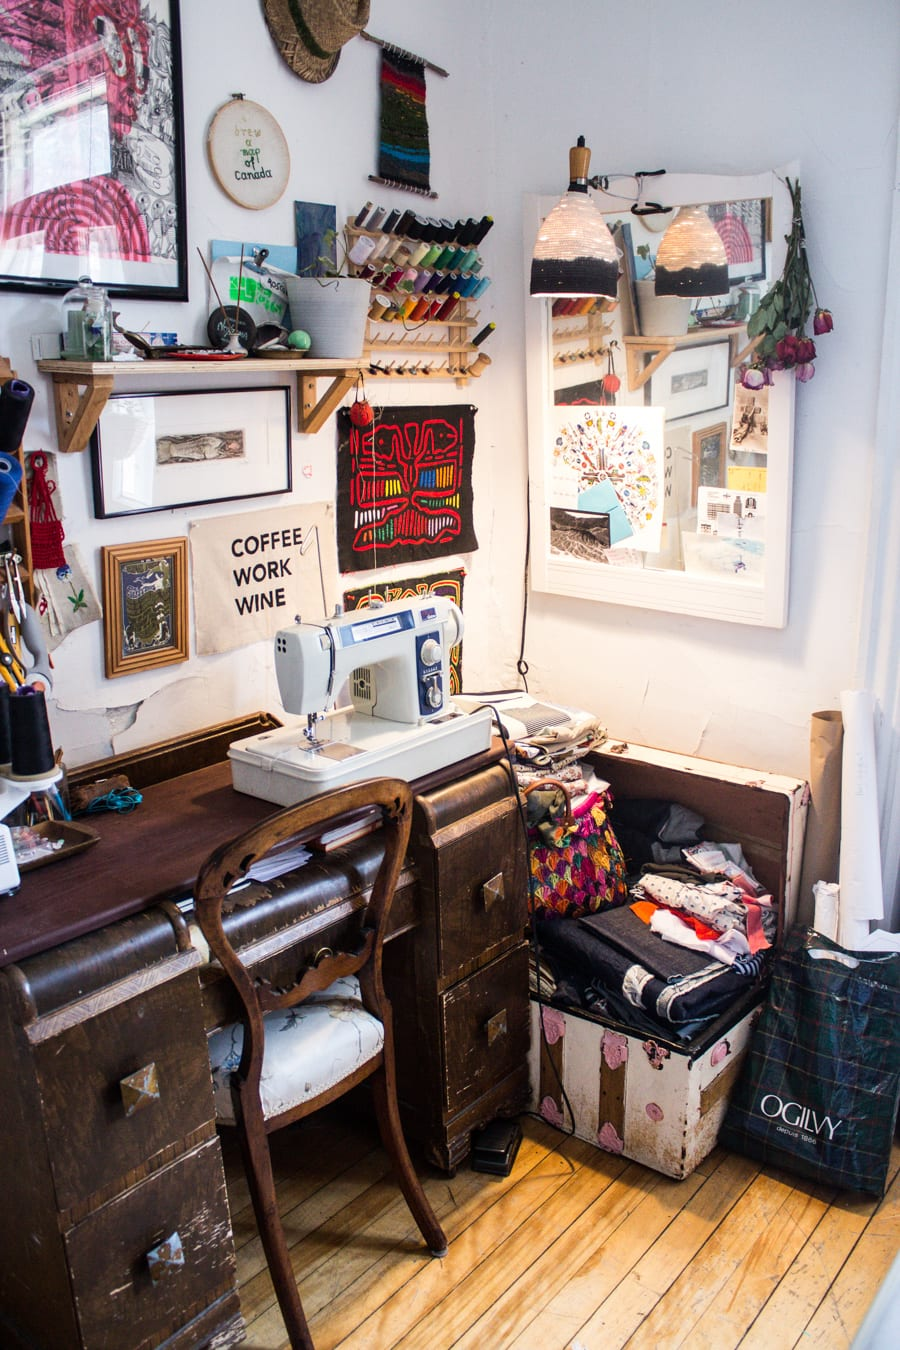 Tips for sewing in a small space // Closet Case Patterns